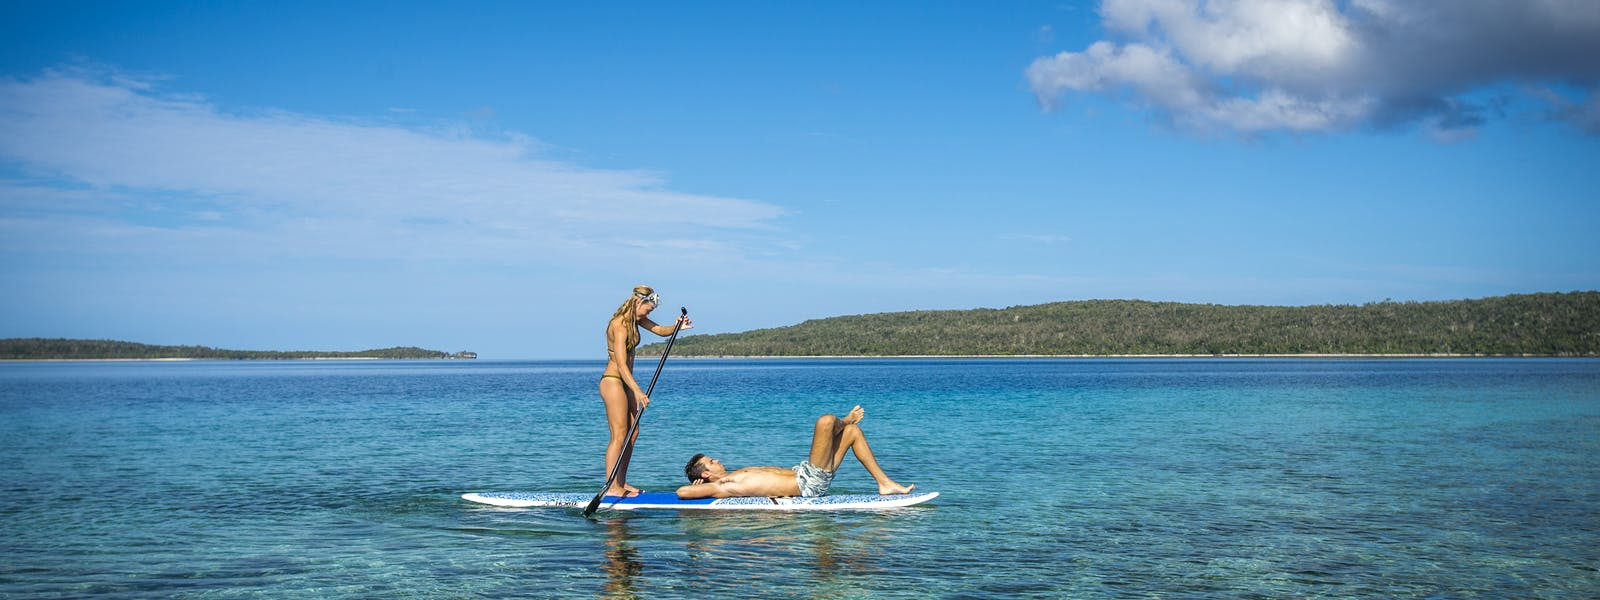 Paddle boards The Havannah, Vanuatu. Award winning Luxury resort retreat for couples,  romance, weddings and Honeymoon.